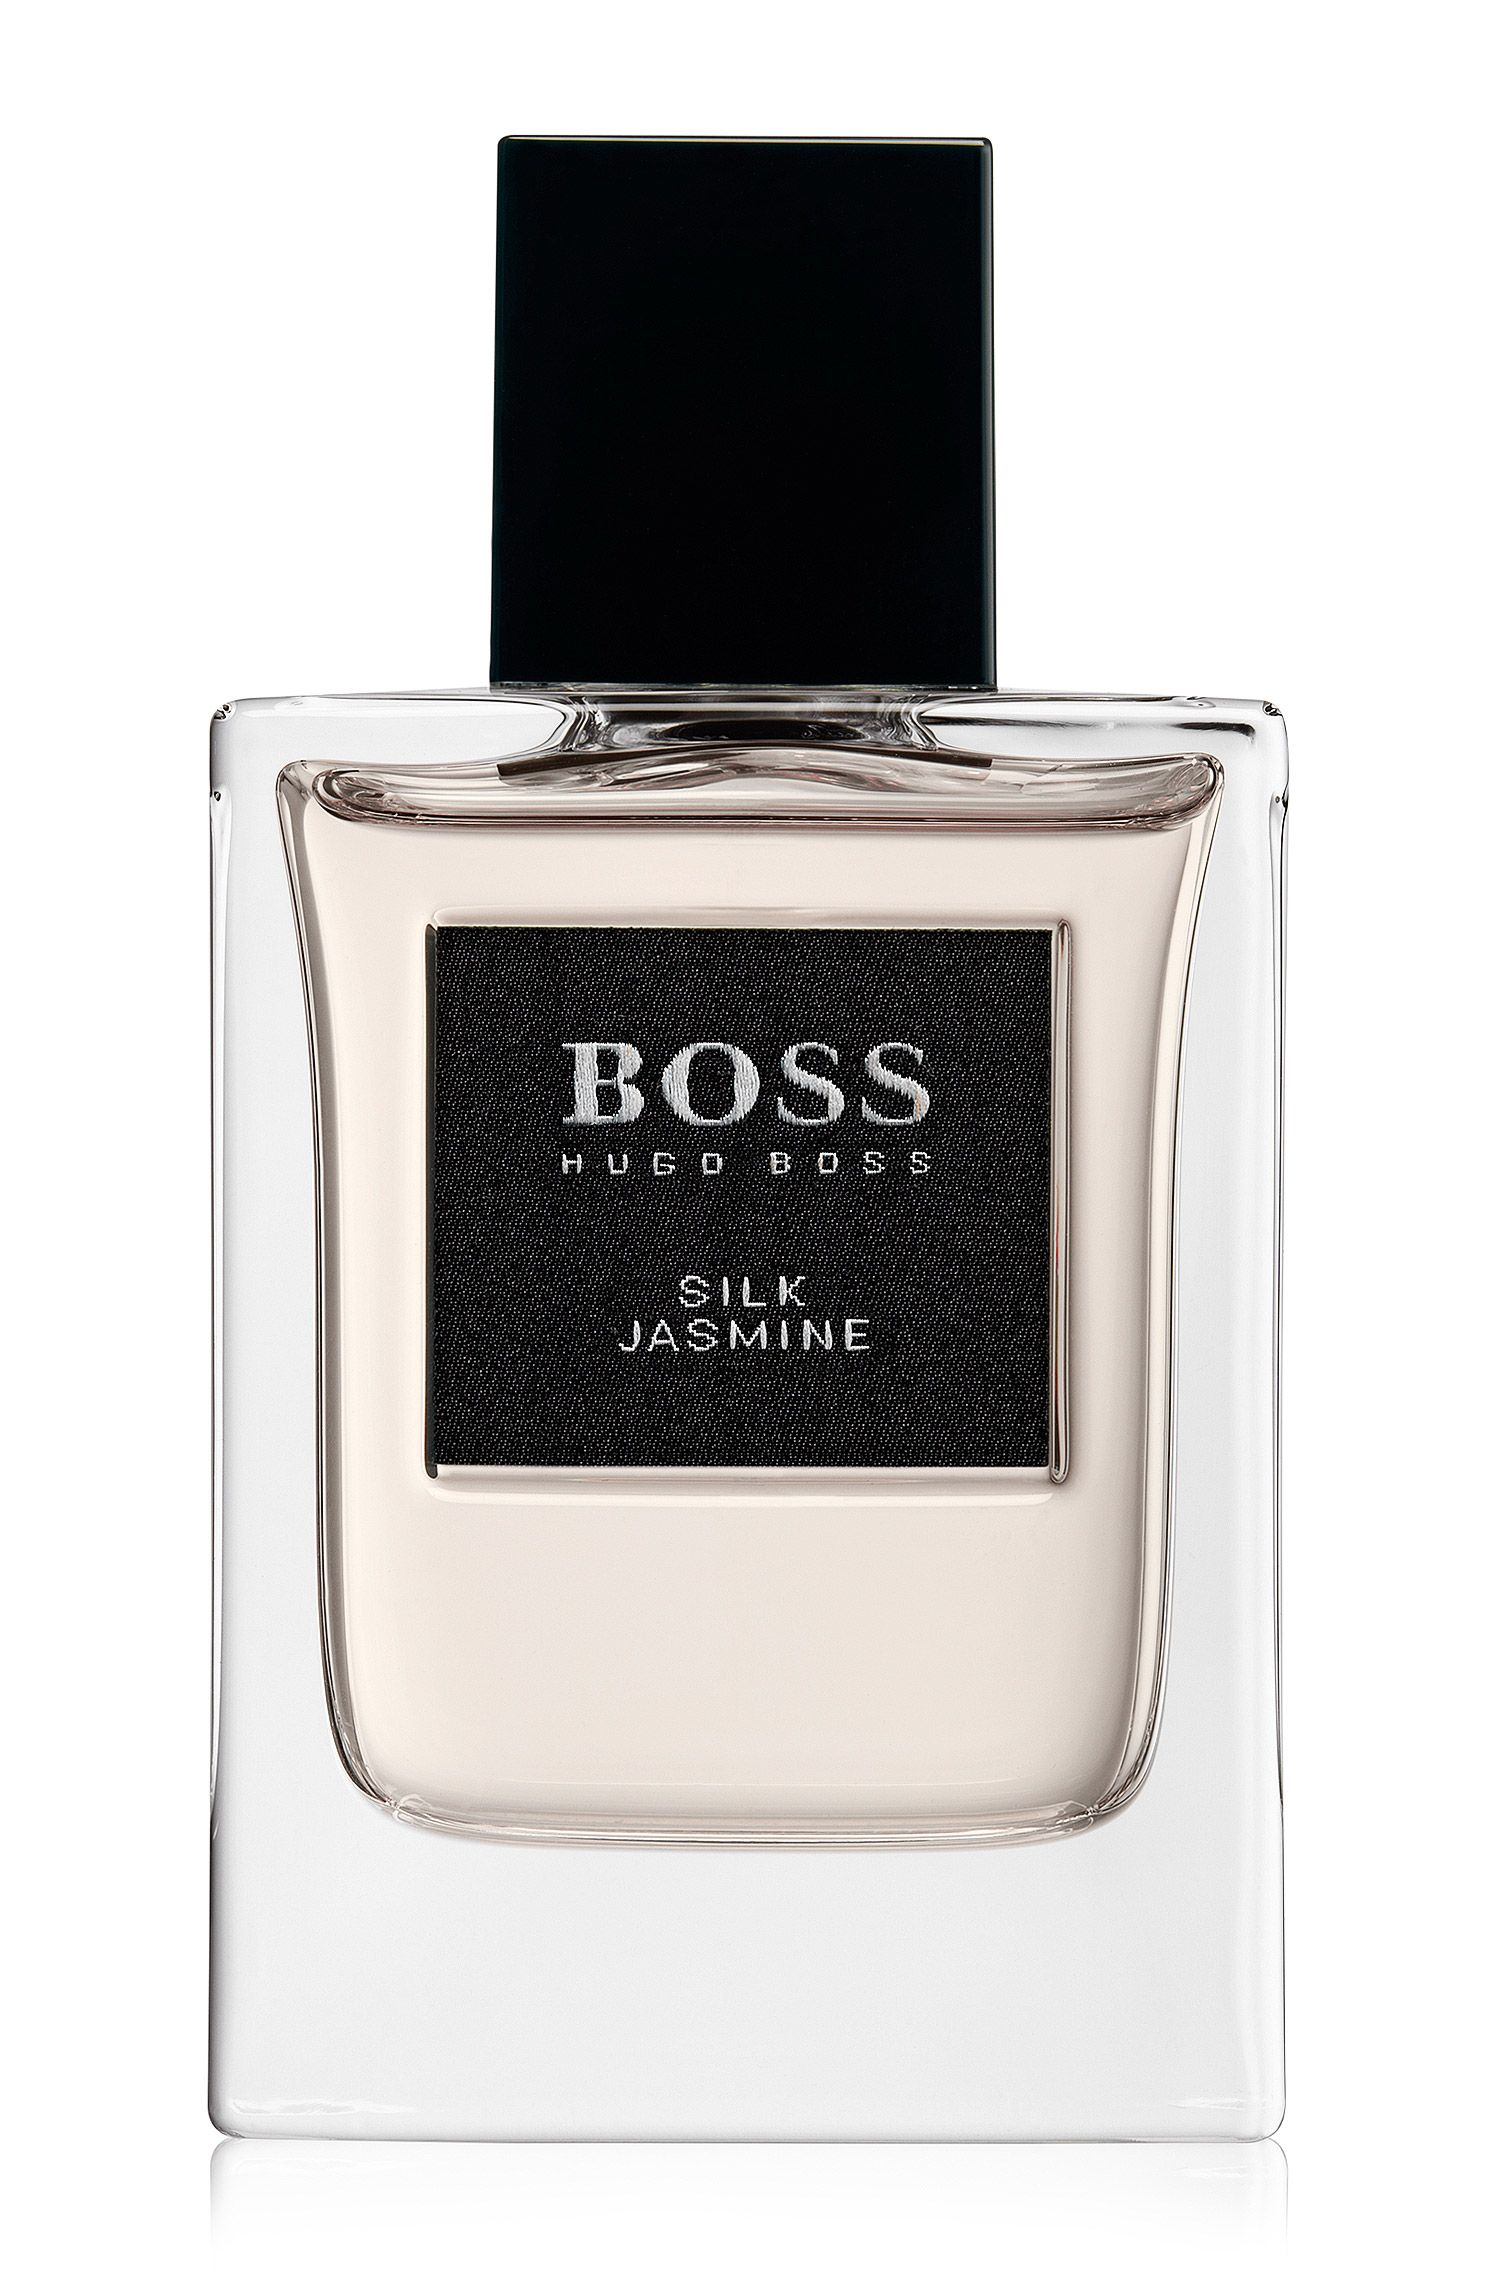 BOSS The Collection - Eau de Parfum Silk Jasmine